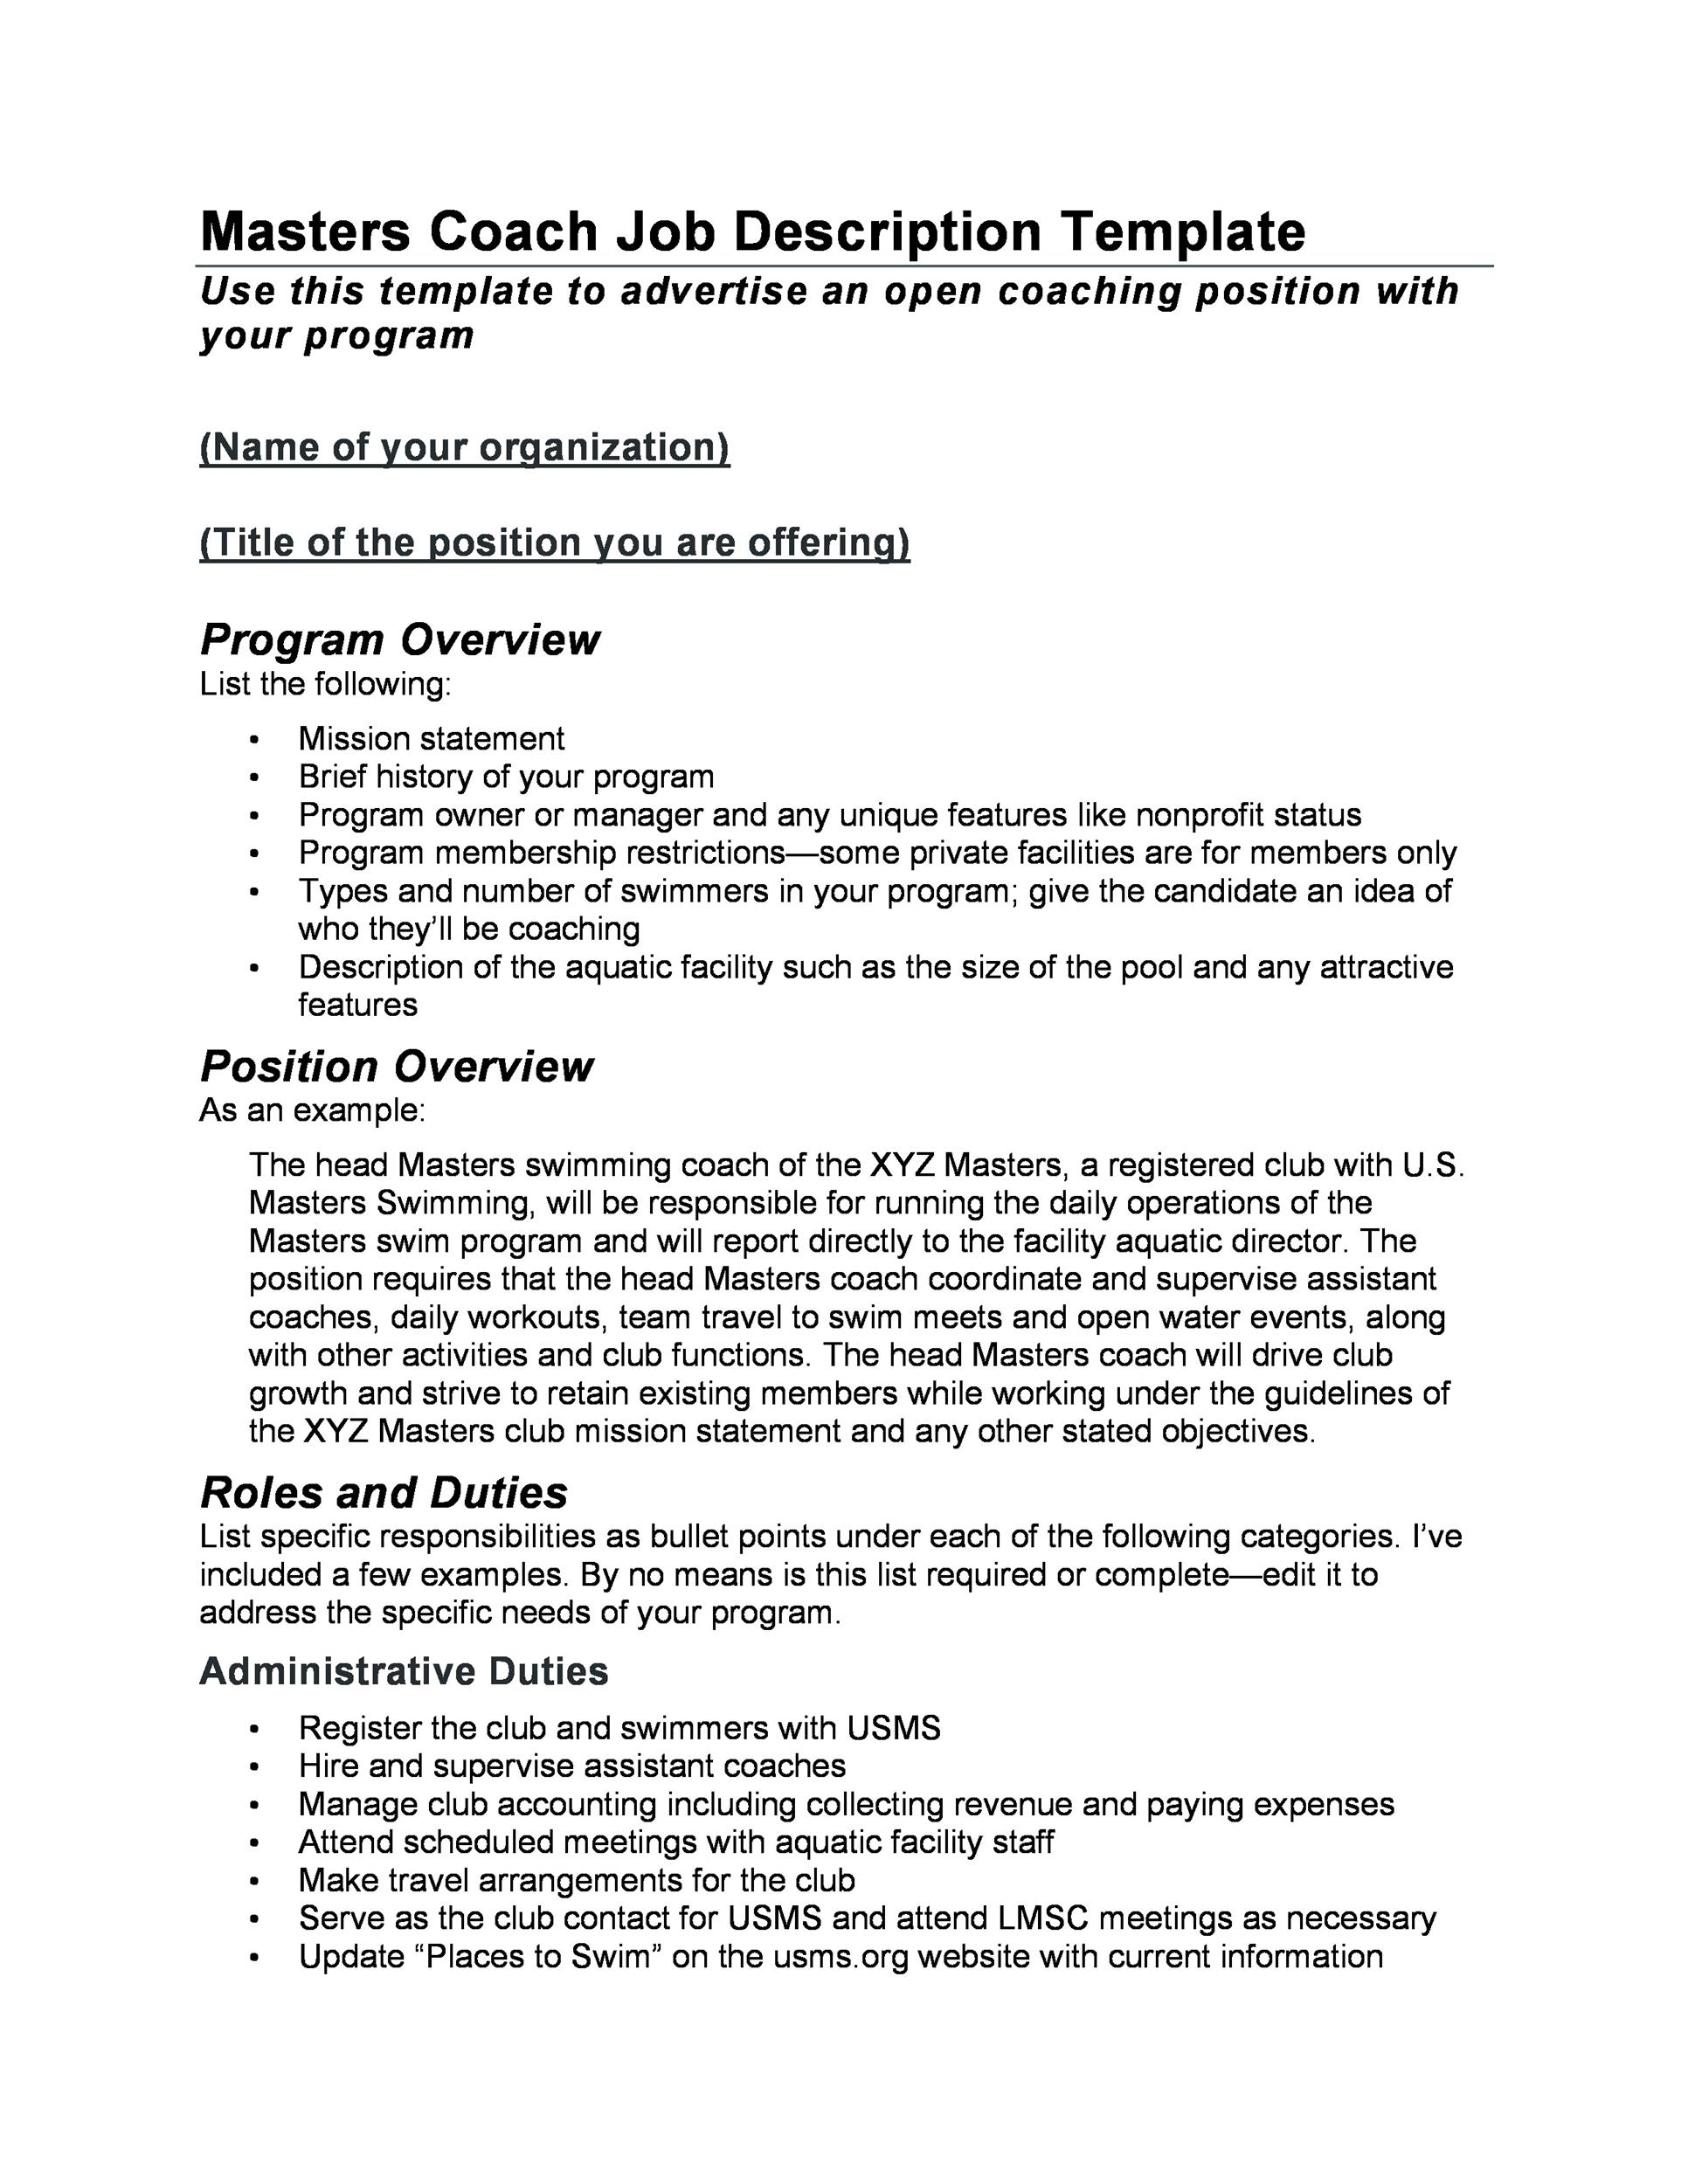 Free Job Description Template 08